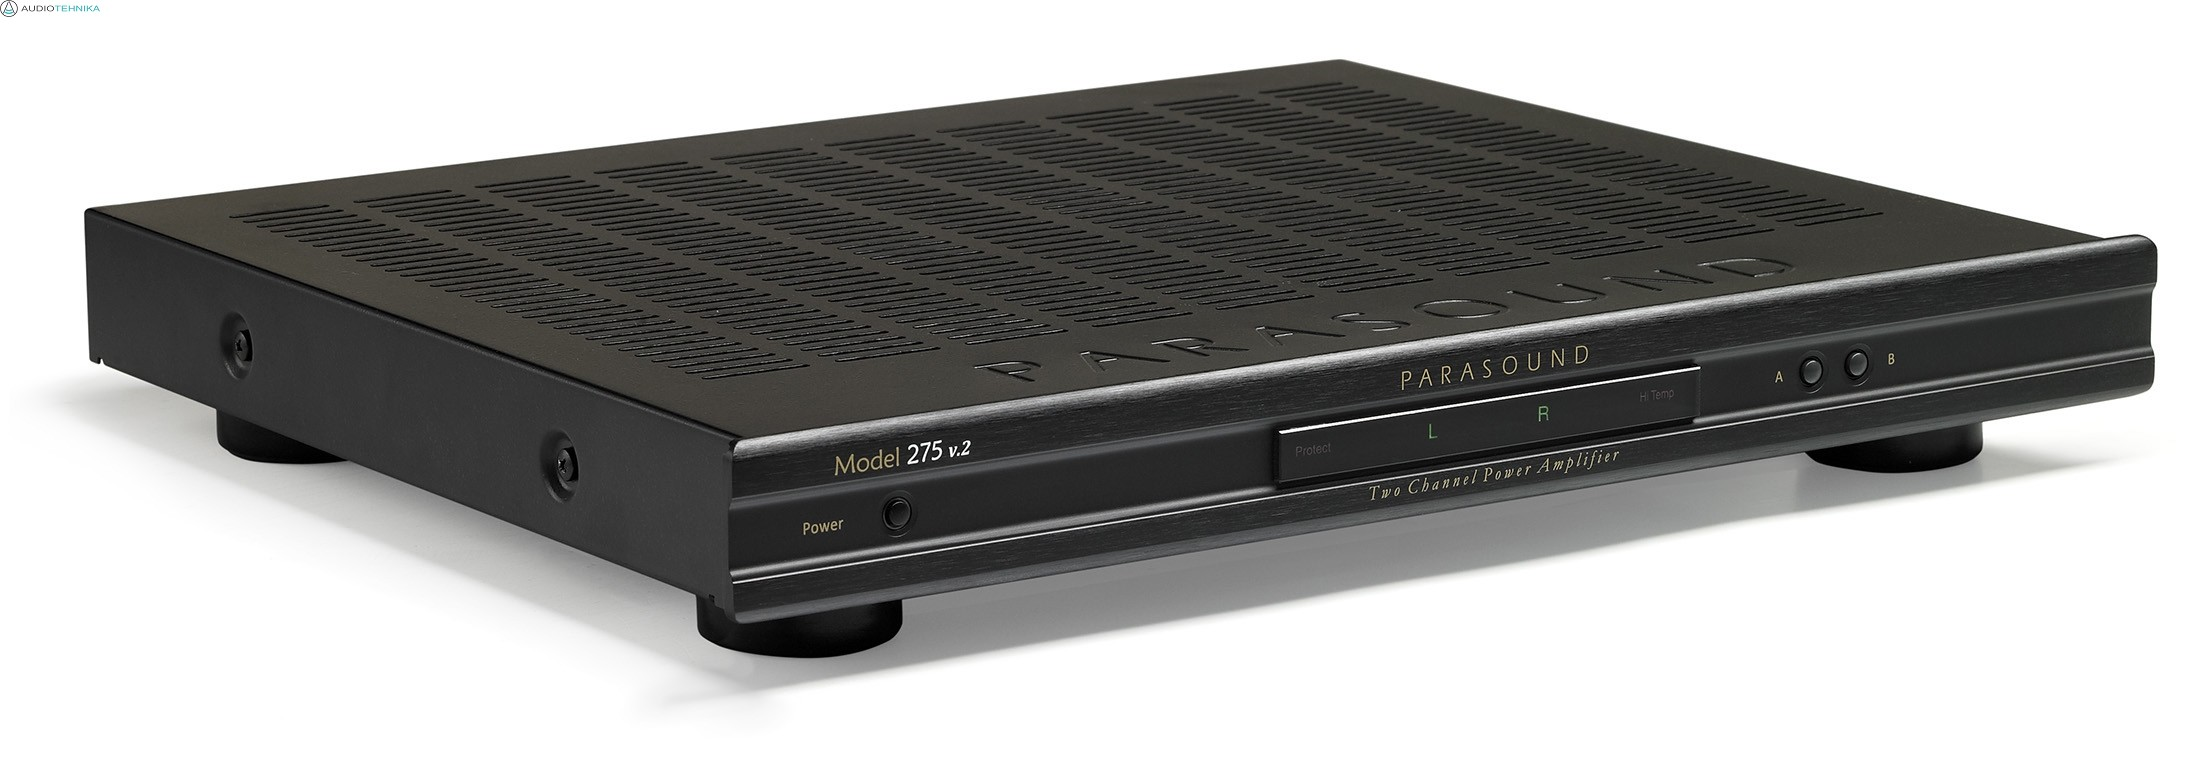 PARASOUND NewClassic 275 v.2 Two Channel Power Amplifier